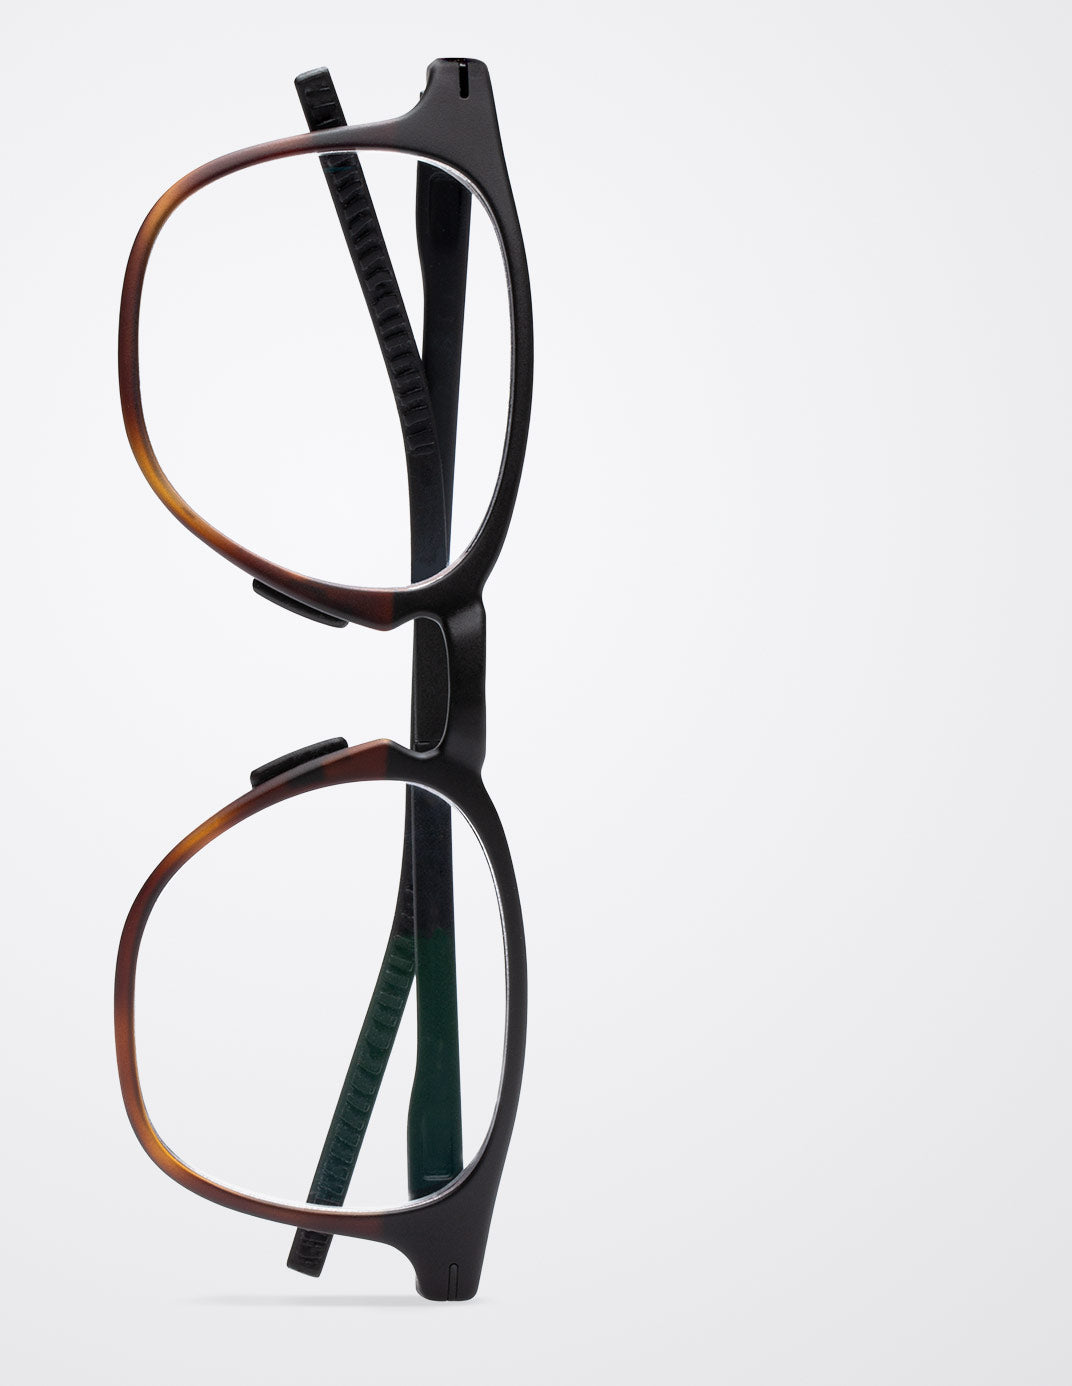 glasses with clear prescription lenses